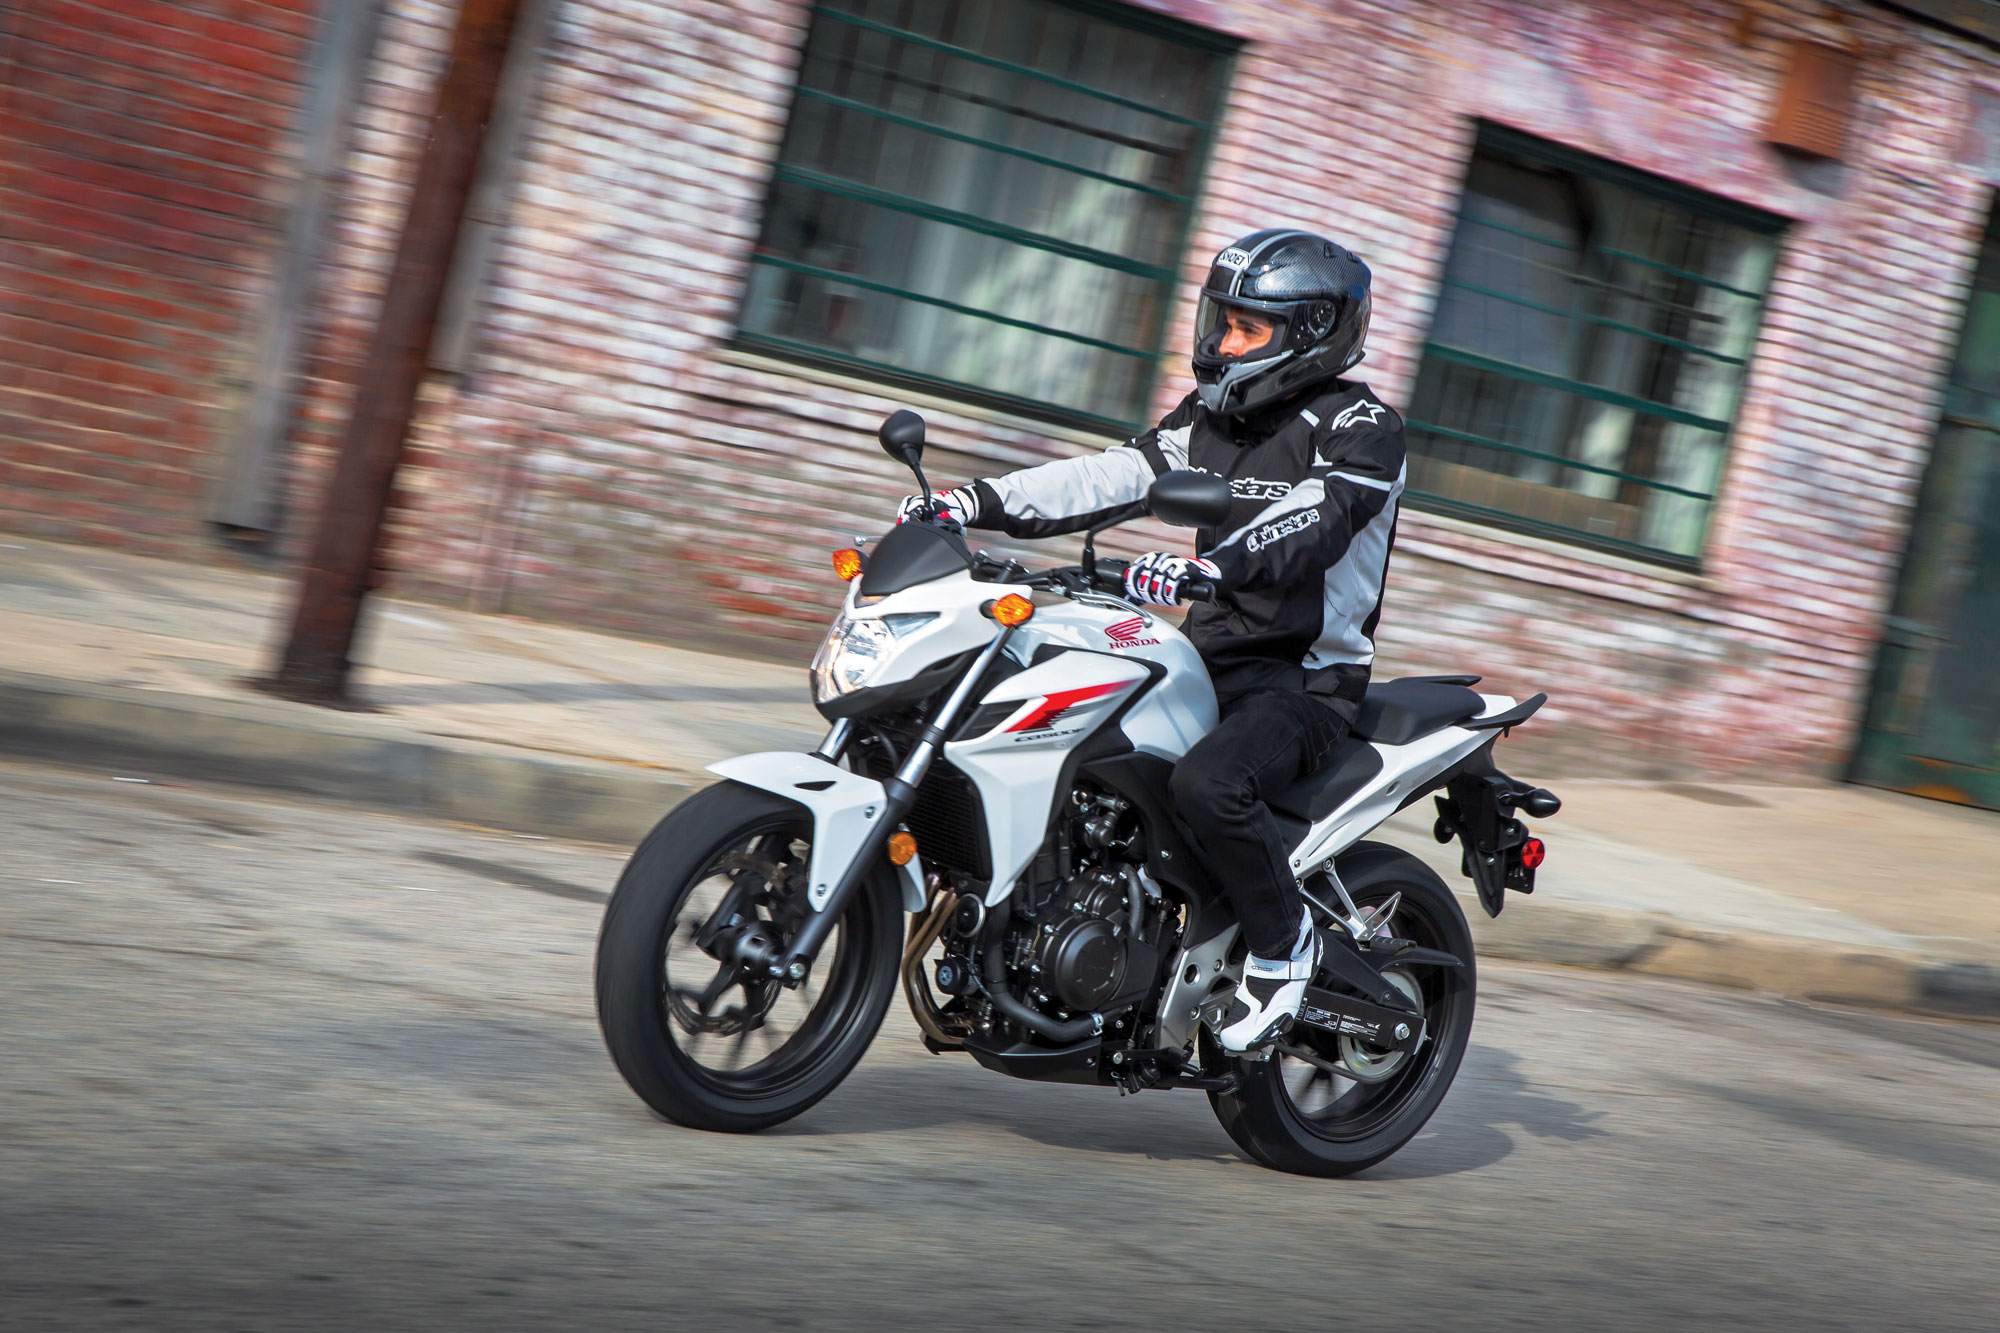 Honda Cbx 500 Review - Back to 2013 honda motorcycle model review page